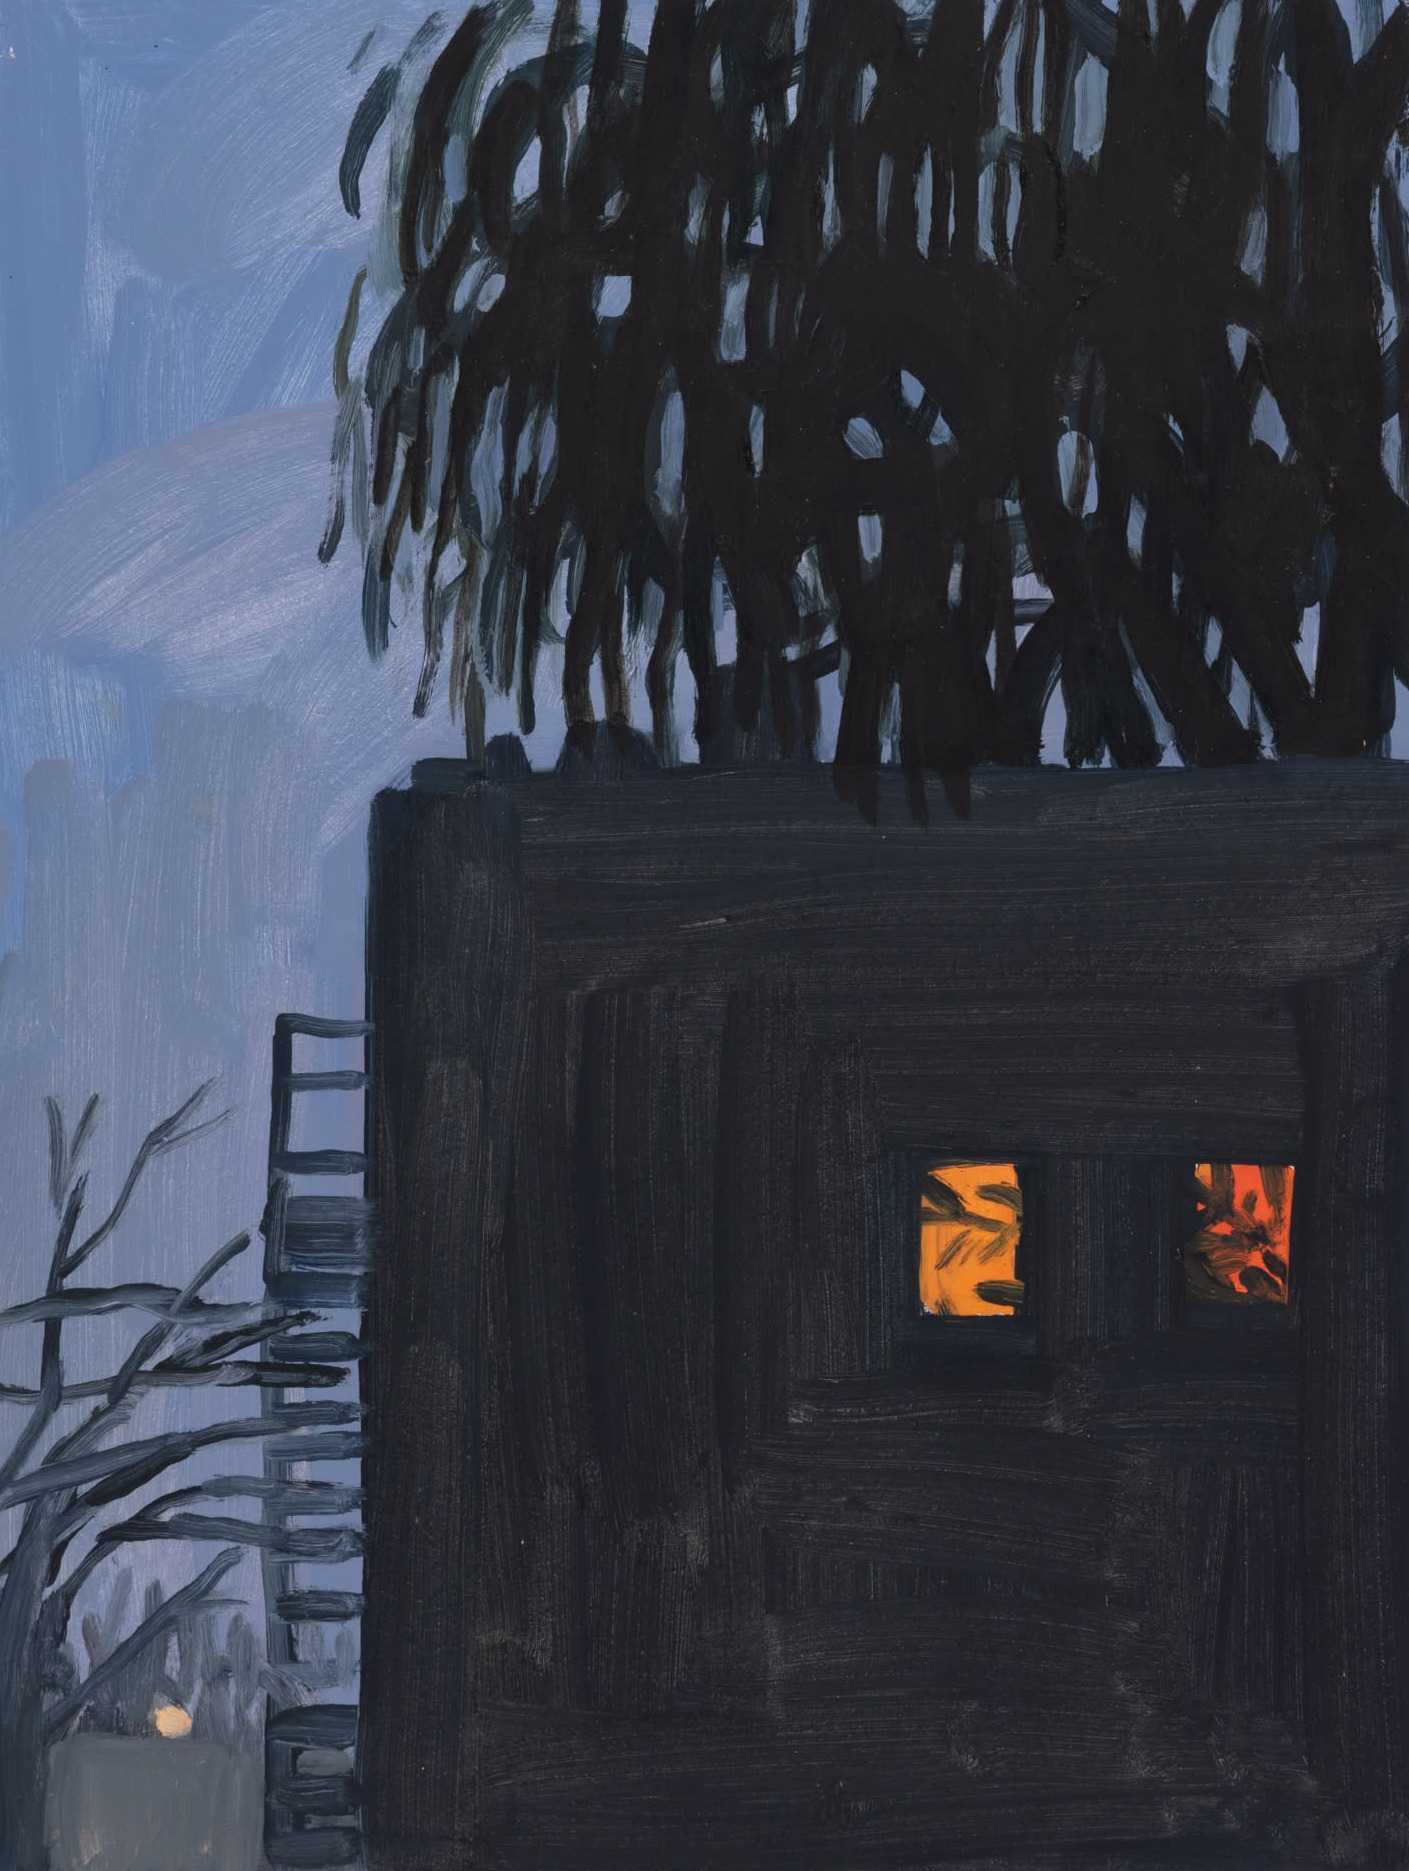 A painting by Claudia Keep titled Marcy Avenue, 7:49 PM, dated 2020.